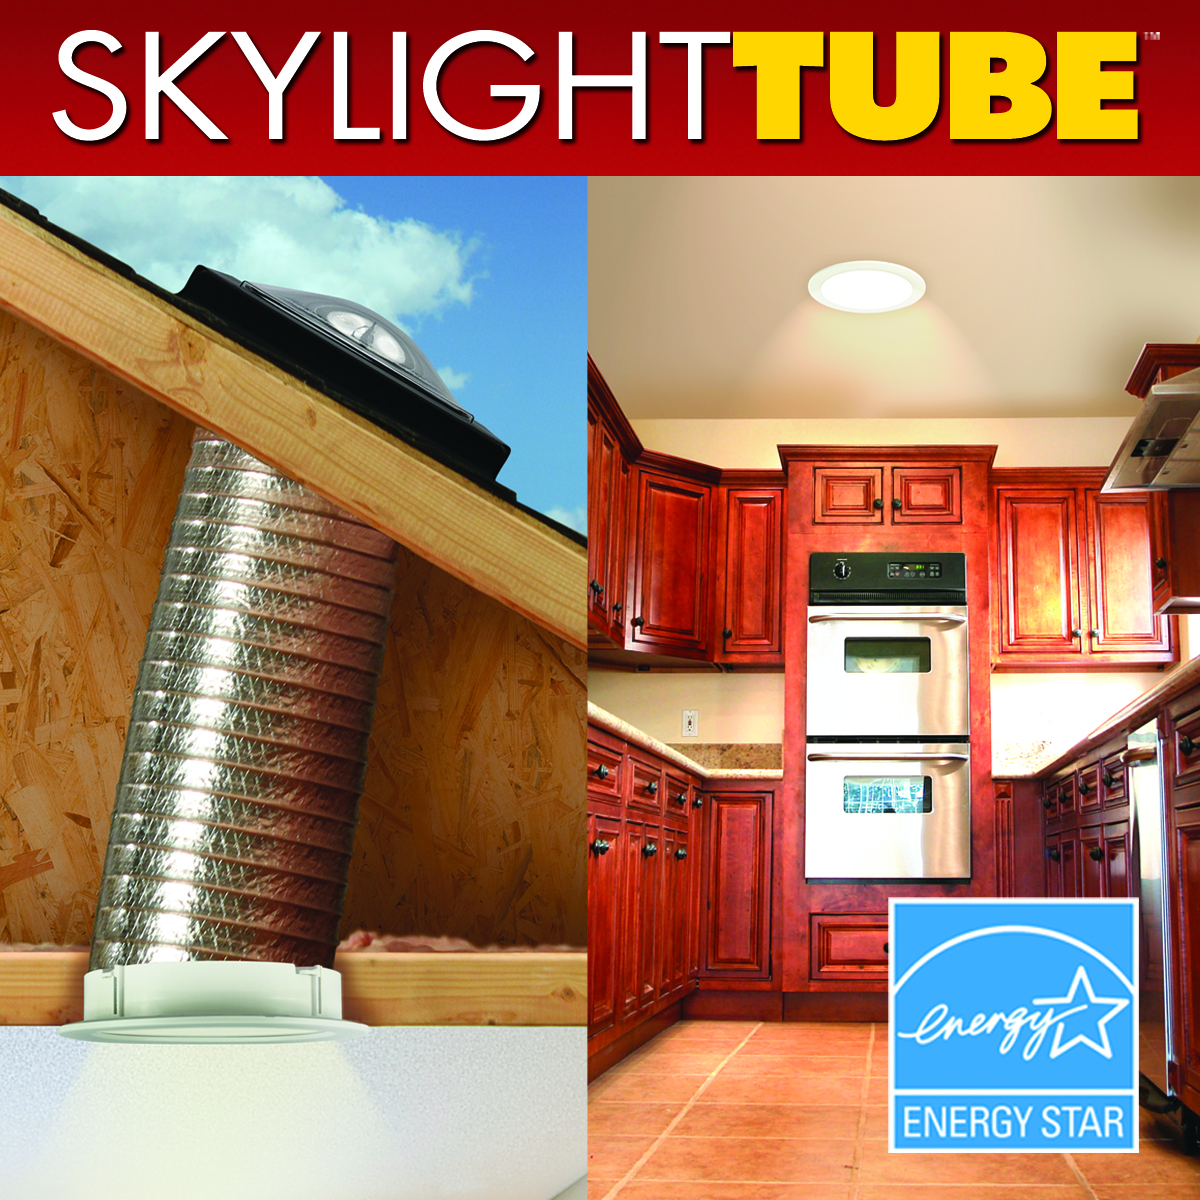 Skylight Tube U S Sunlight S Solar Attic Fan And Skylight Tube Stronger Than